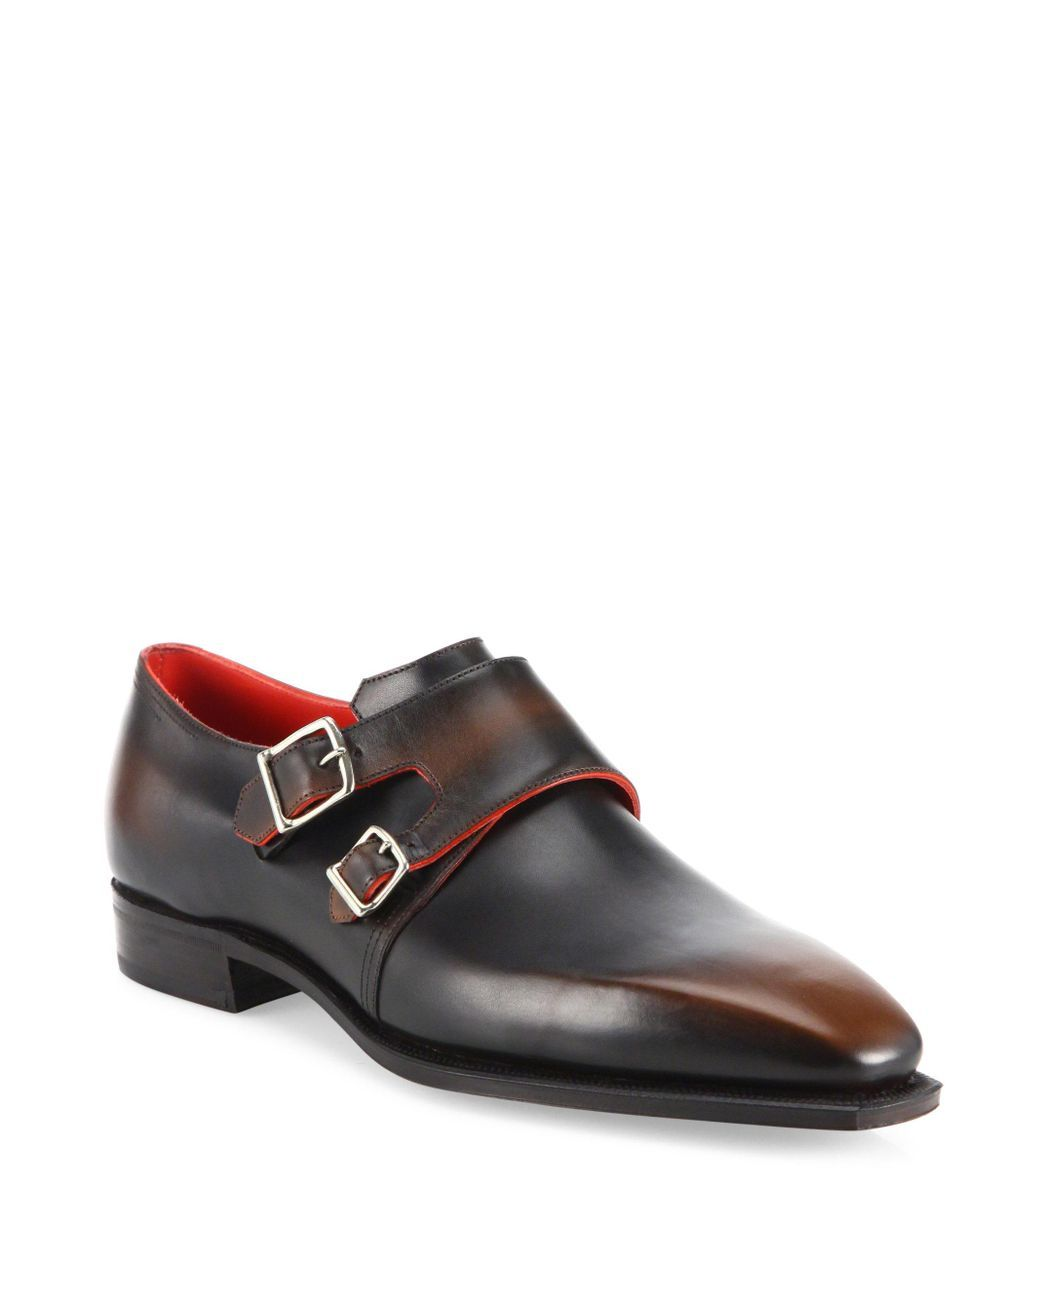 CORTHAY Arca Leather Monk-Strap Dress Shoes iFKOH9NhG